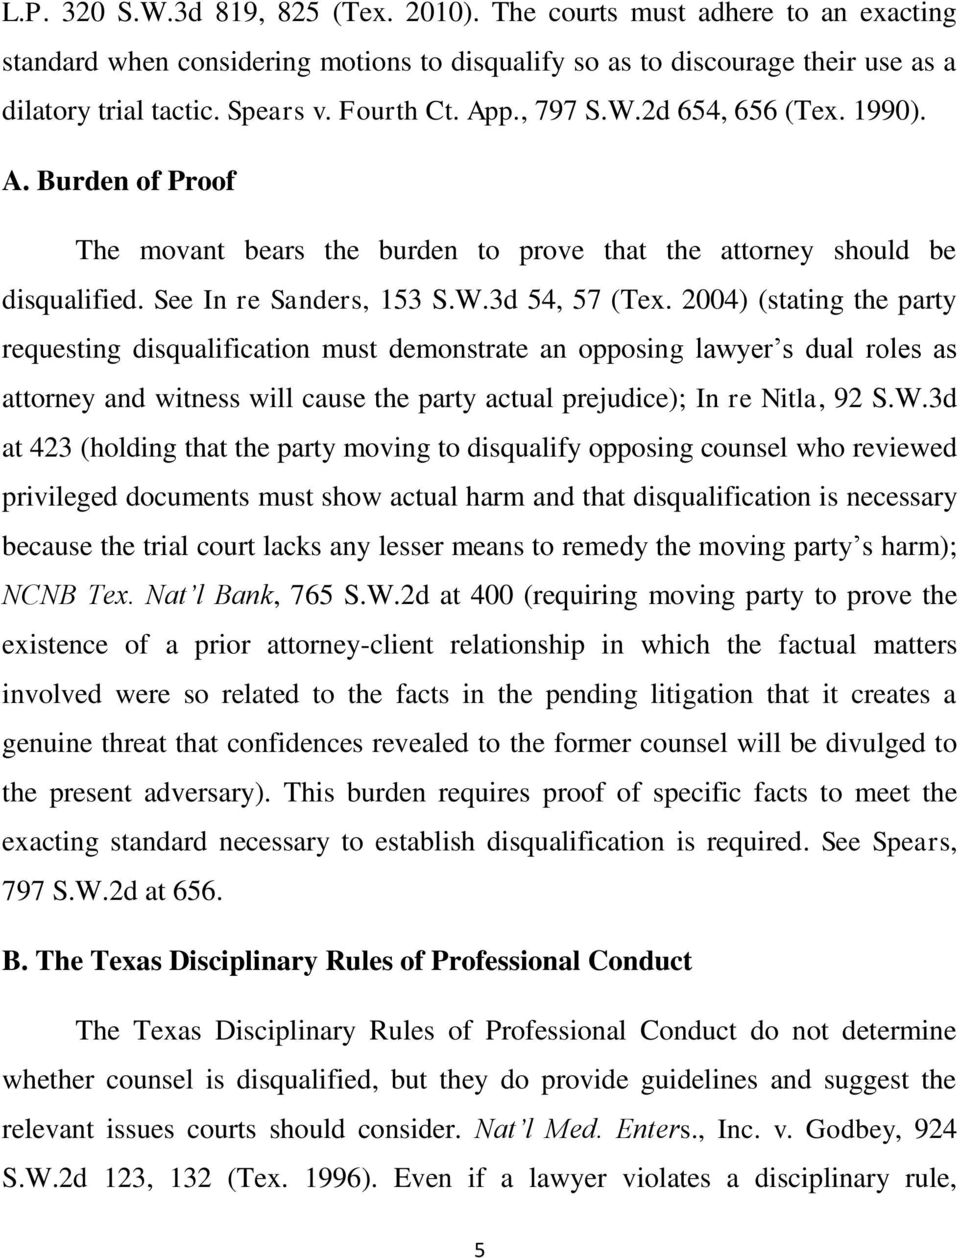 2004) (stating the party requesting disqualification must demonstrate an opposing lawyer s dual roles as attorney and witness will cause the party actual prejudice); In re Nitla, 92 S.W.